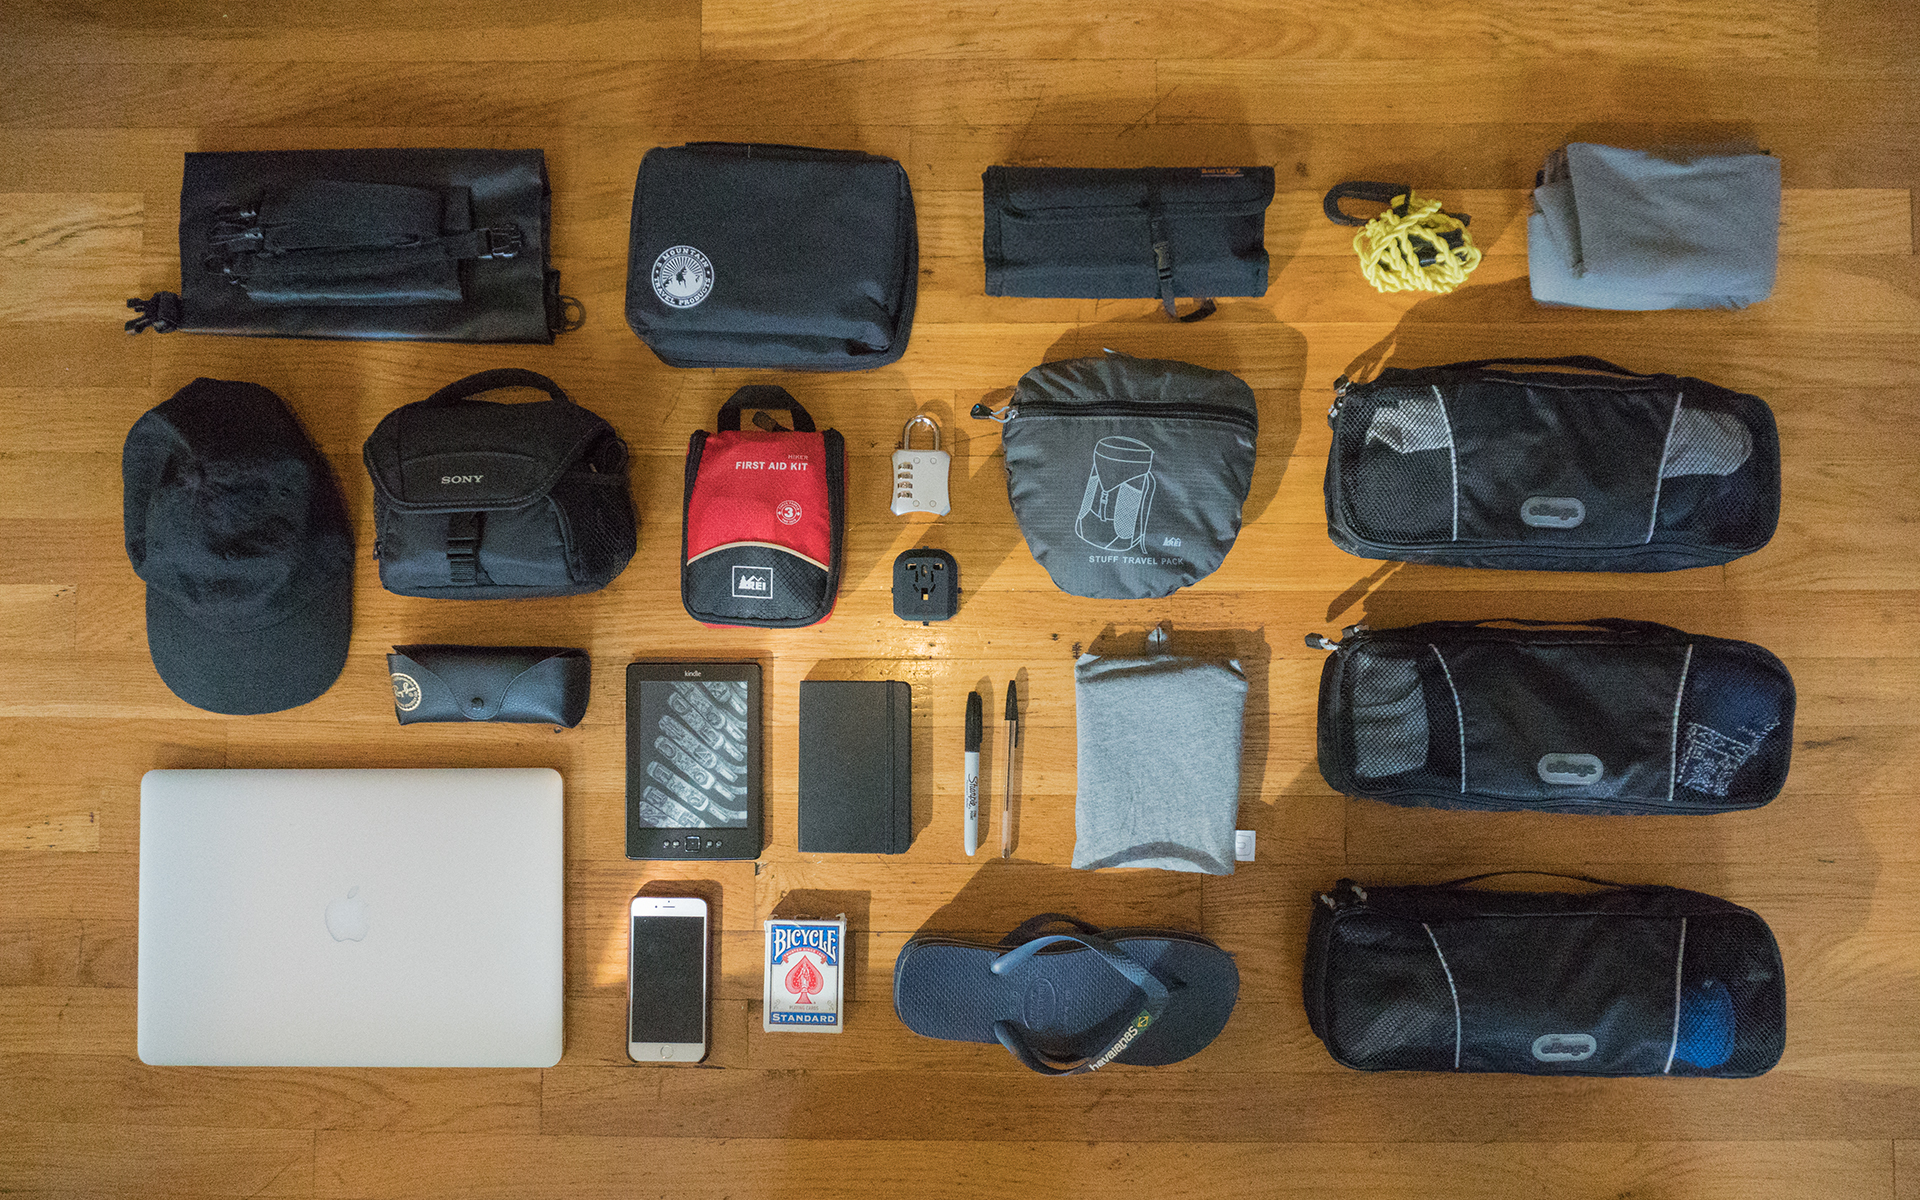 ... perusing travel blogs and onebag subreddit lurking, here is my very  indefinitive minimal packing list for two months in South East Asia. 41f894b7e3